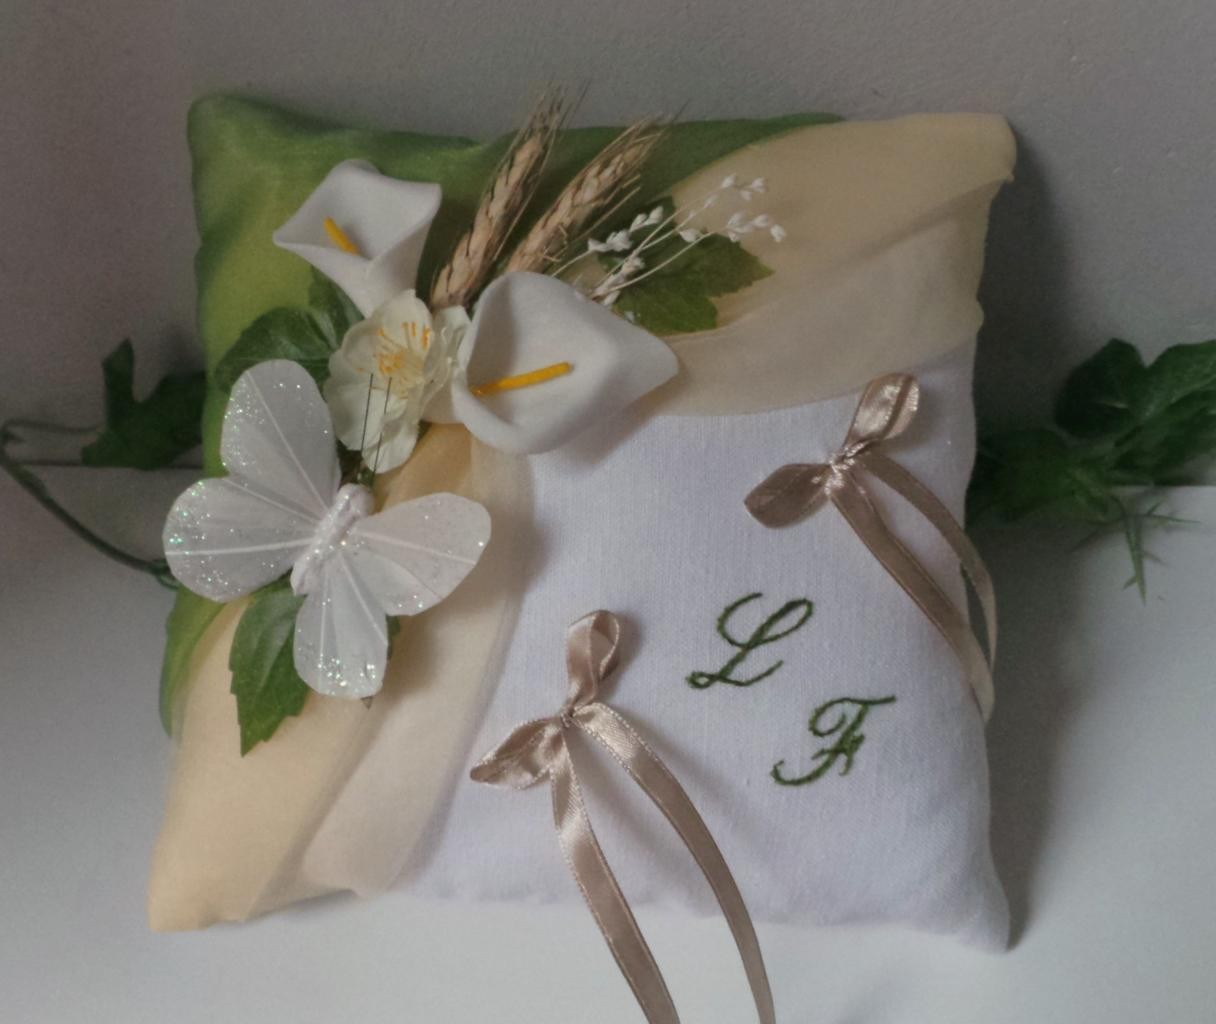 Coussin alliance champetre vert nature personnalise